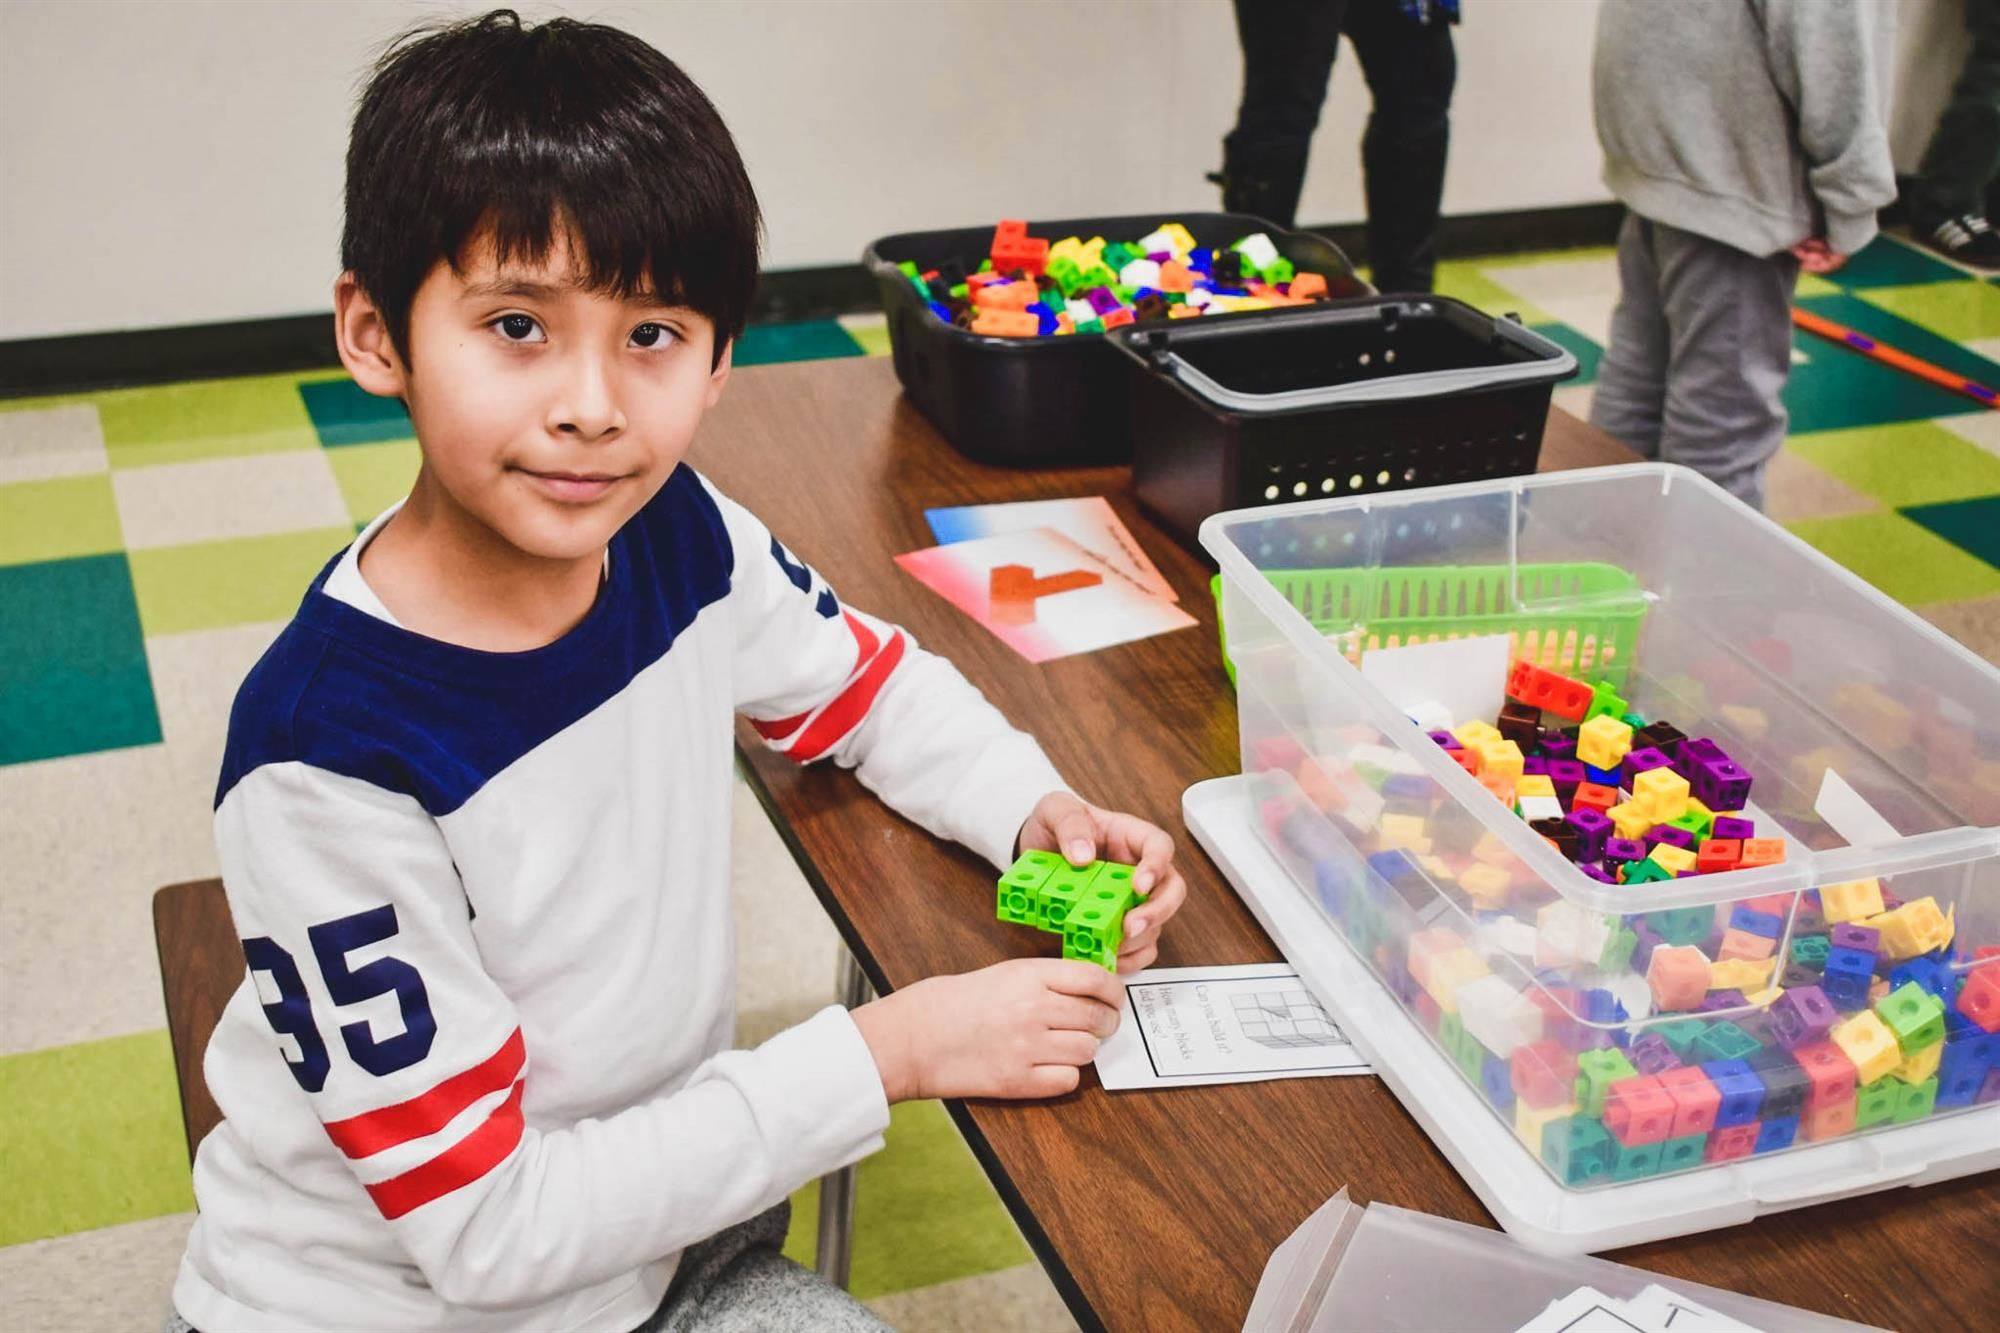 Student smiles with stem blocks